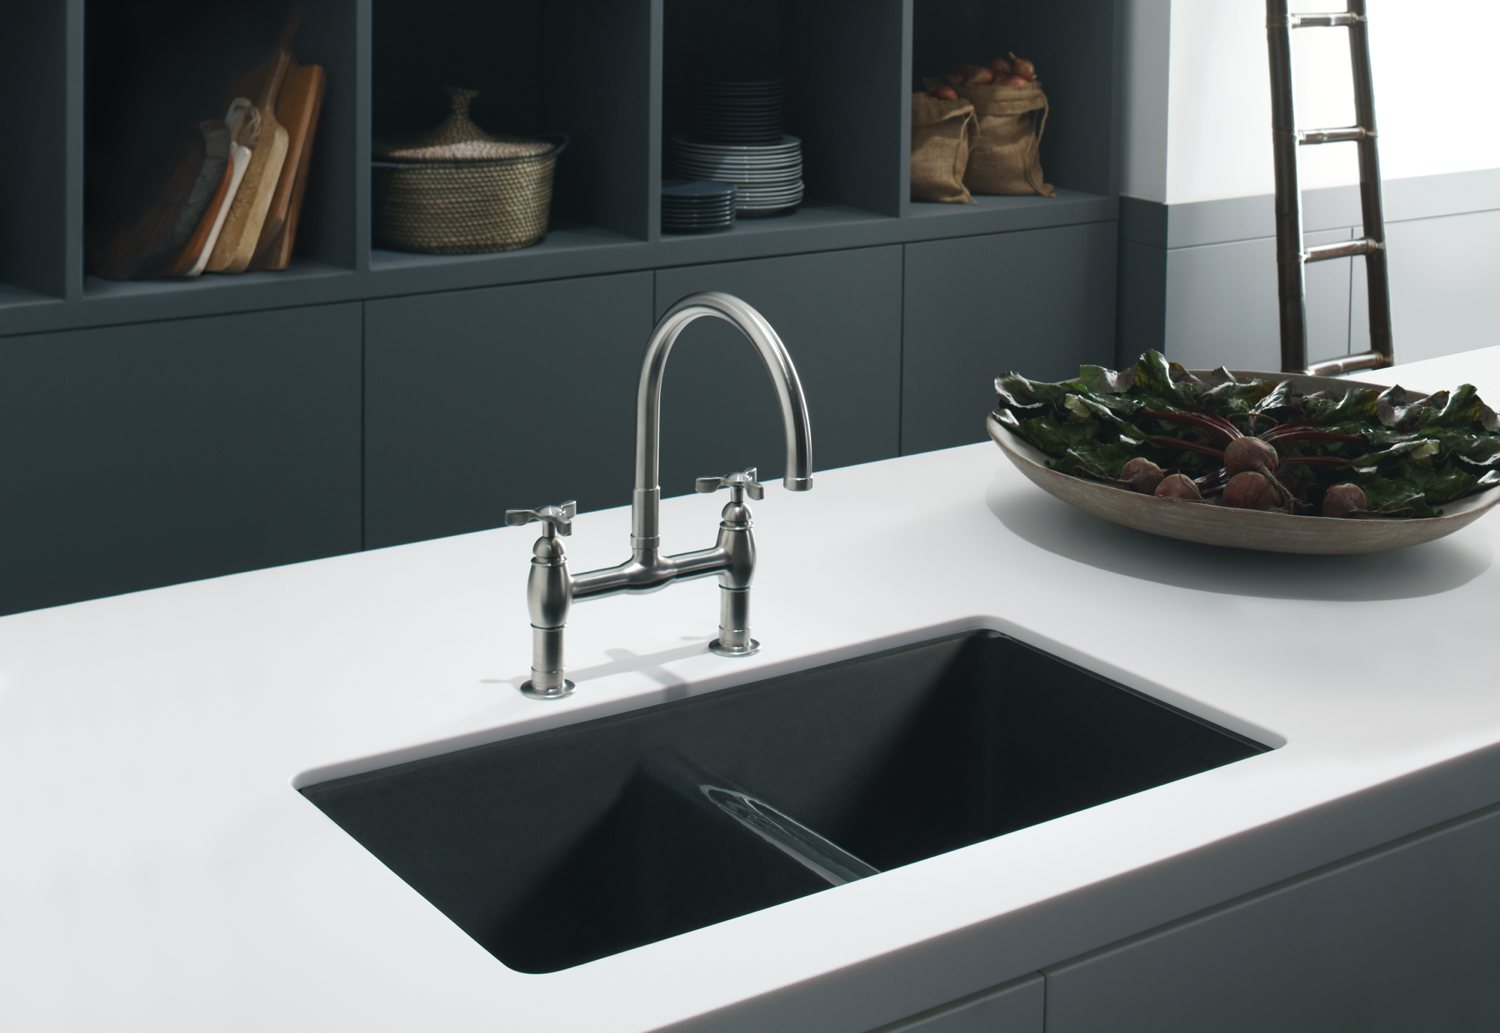 Kohler K 5840 5u 47 Anthem Cast Iron Undercounter Sink With Five